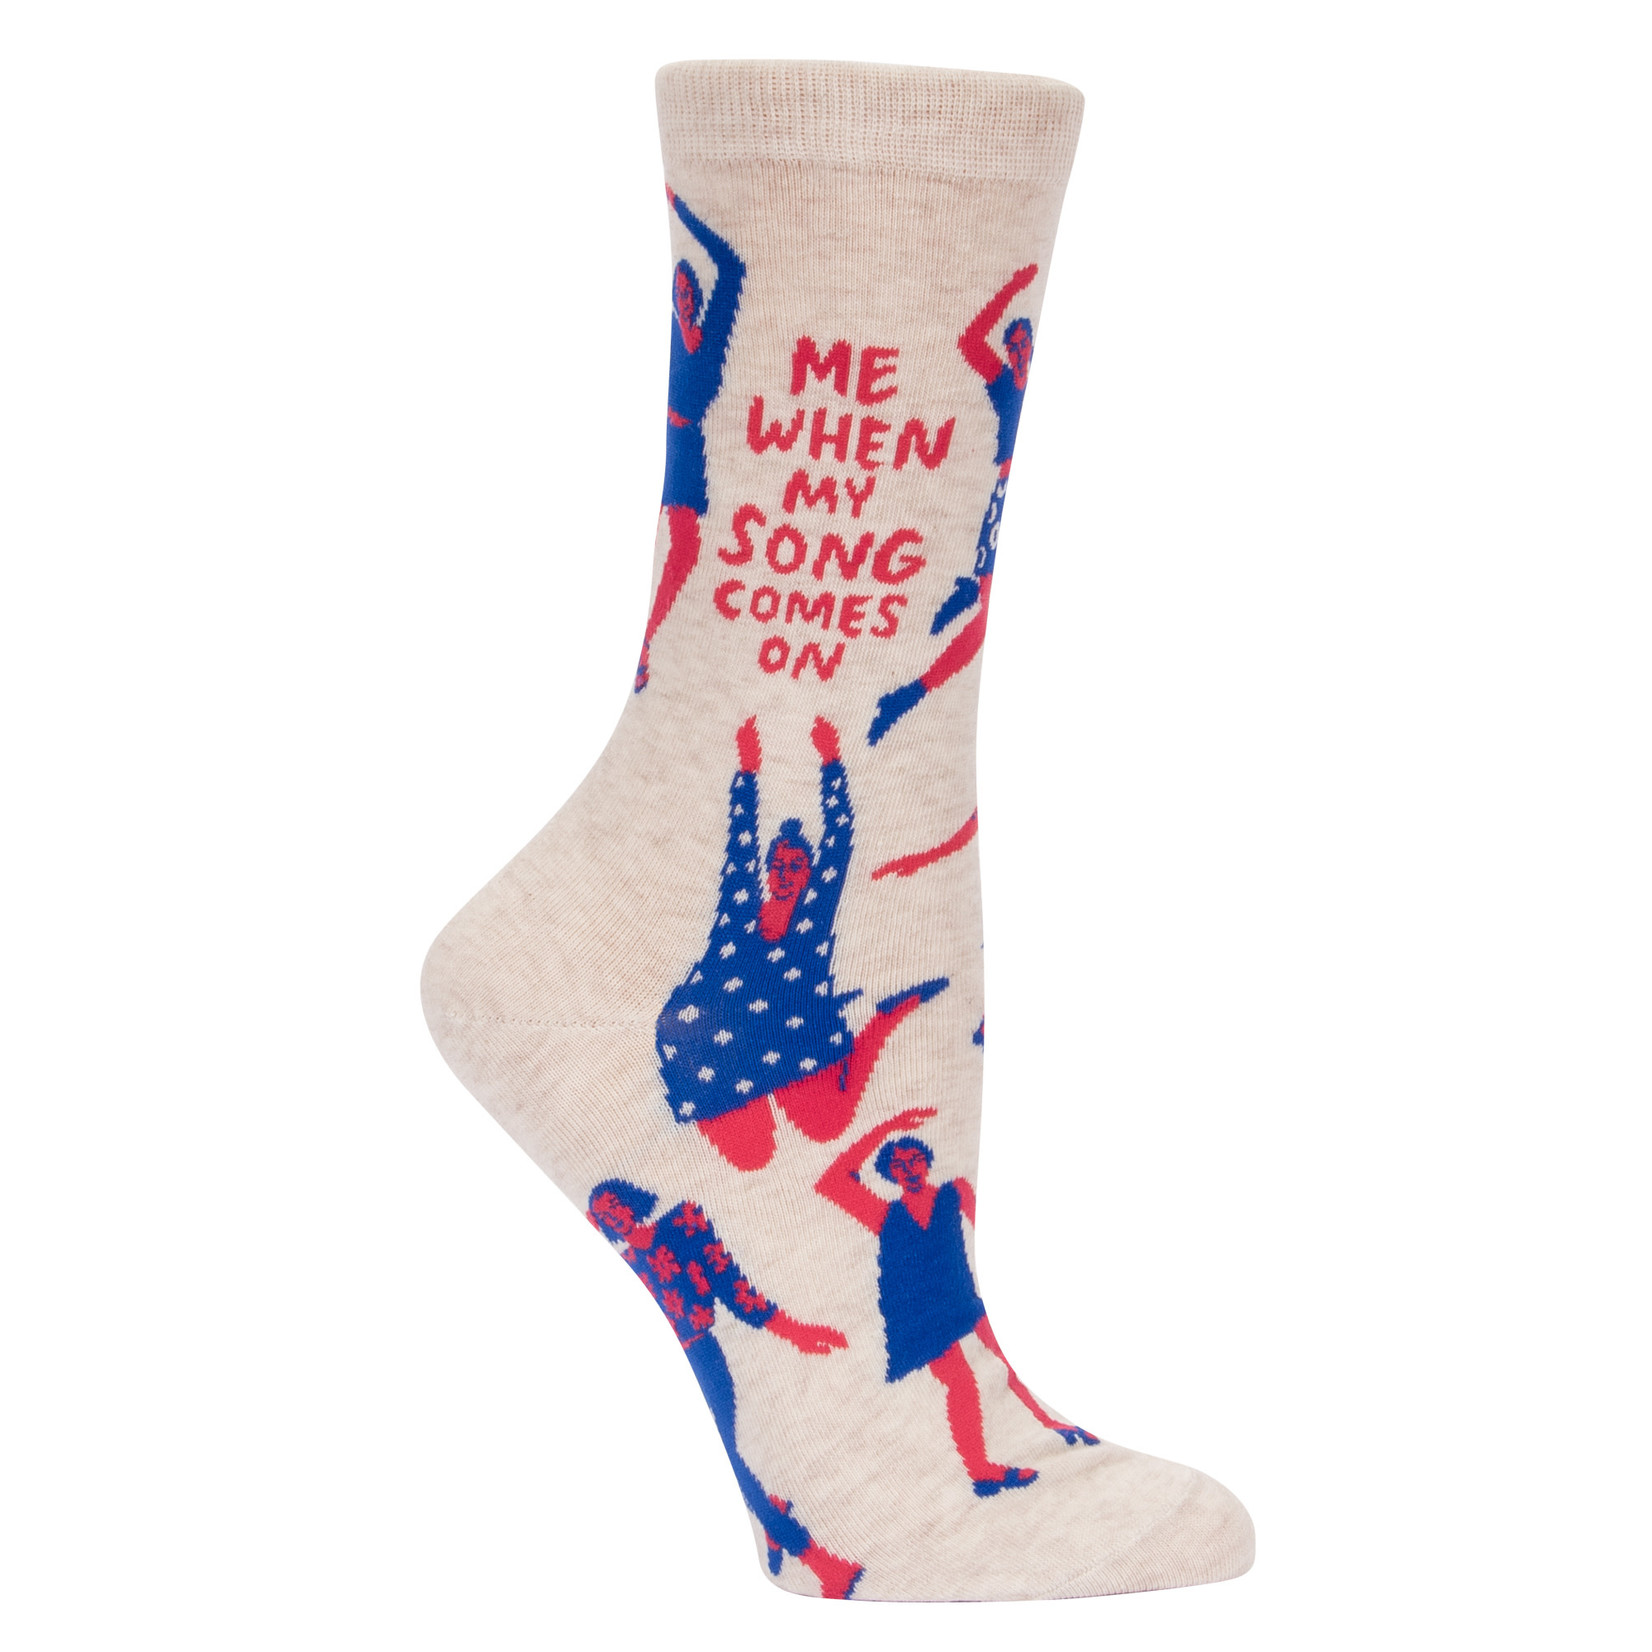 Blue Q Womens Crew Socks - When My Song Comes On